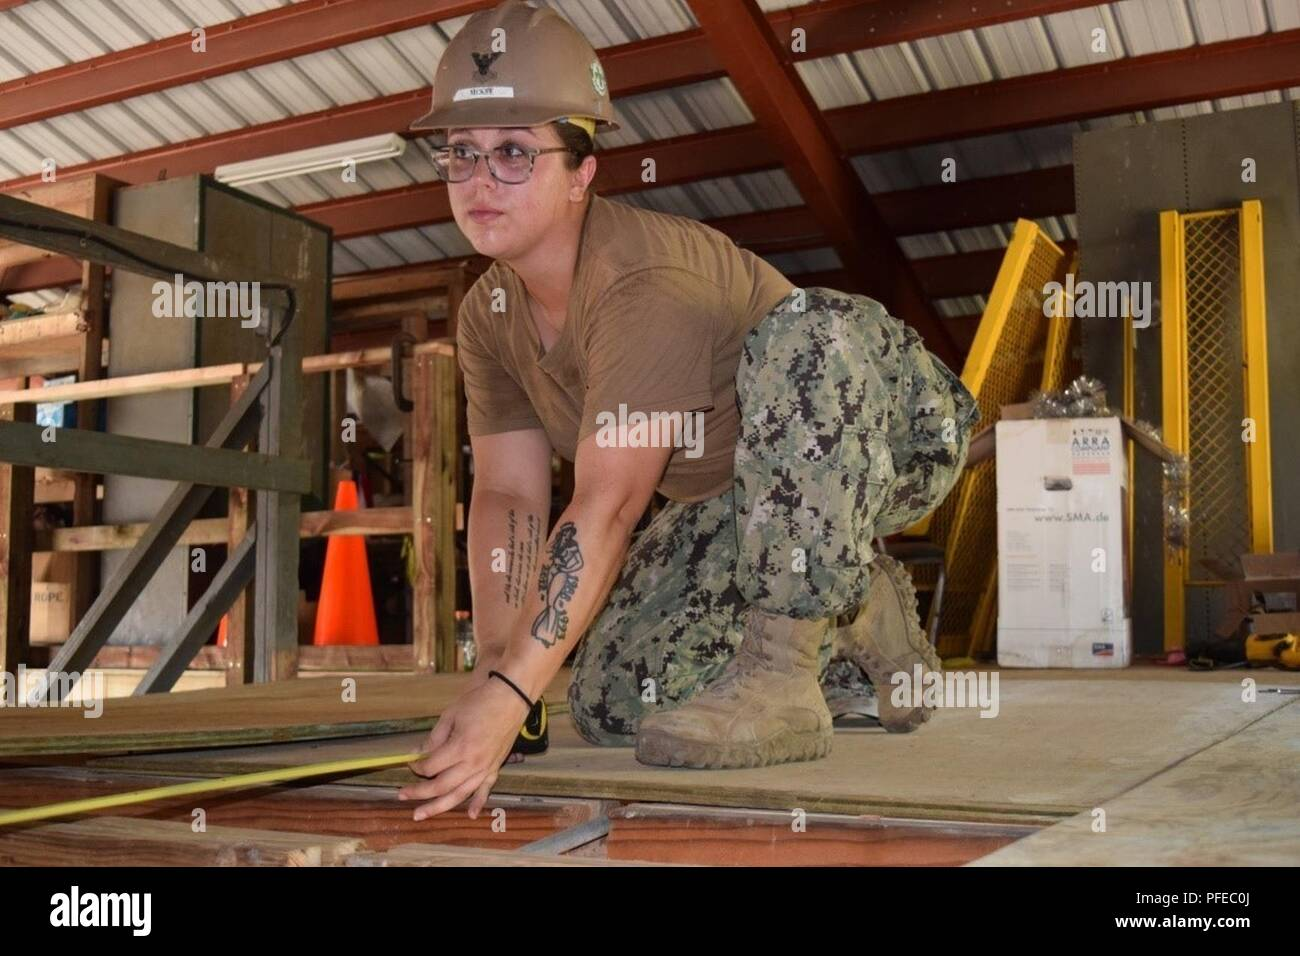 KOROR, Palau (June 5, 2018) Steelworker 2nd Class Petty Officer Shanna McKee, assigned to Naval Mobile Construction Battalion (NMCB) 5, measures the joists in preparation for laying plywood. NMCB 5 is forward deployed to execute construction, humanitarian and foreign assistance, and theater security cooperation support of United States Pacific Command. Stock Photo